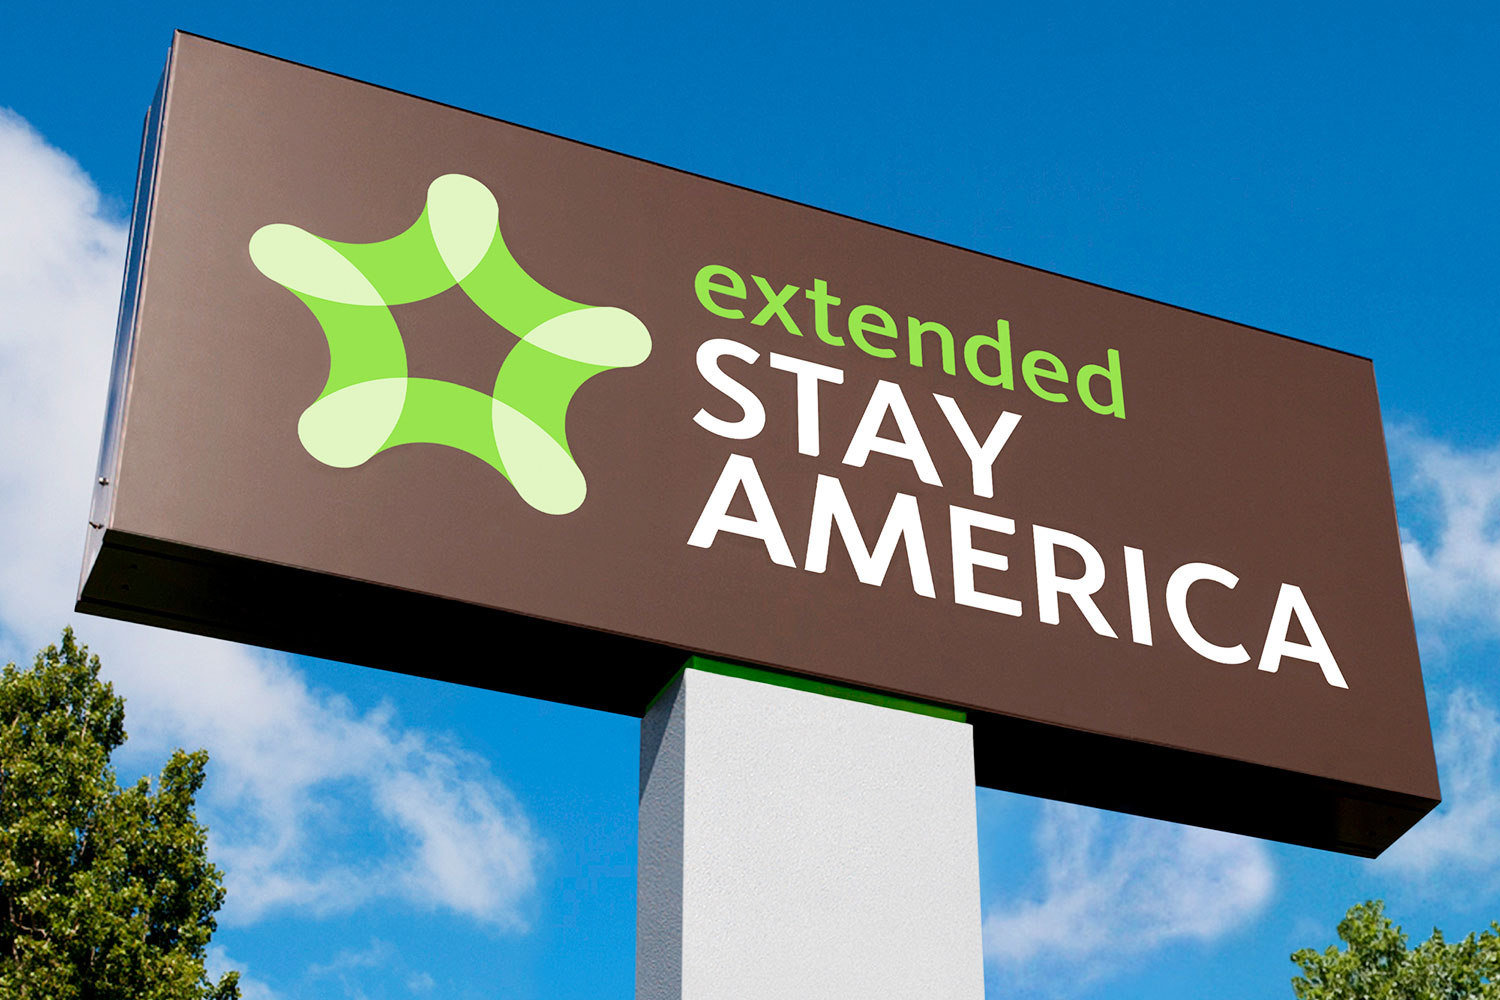 Extended Stay America pylon sign